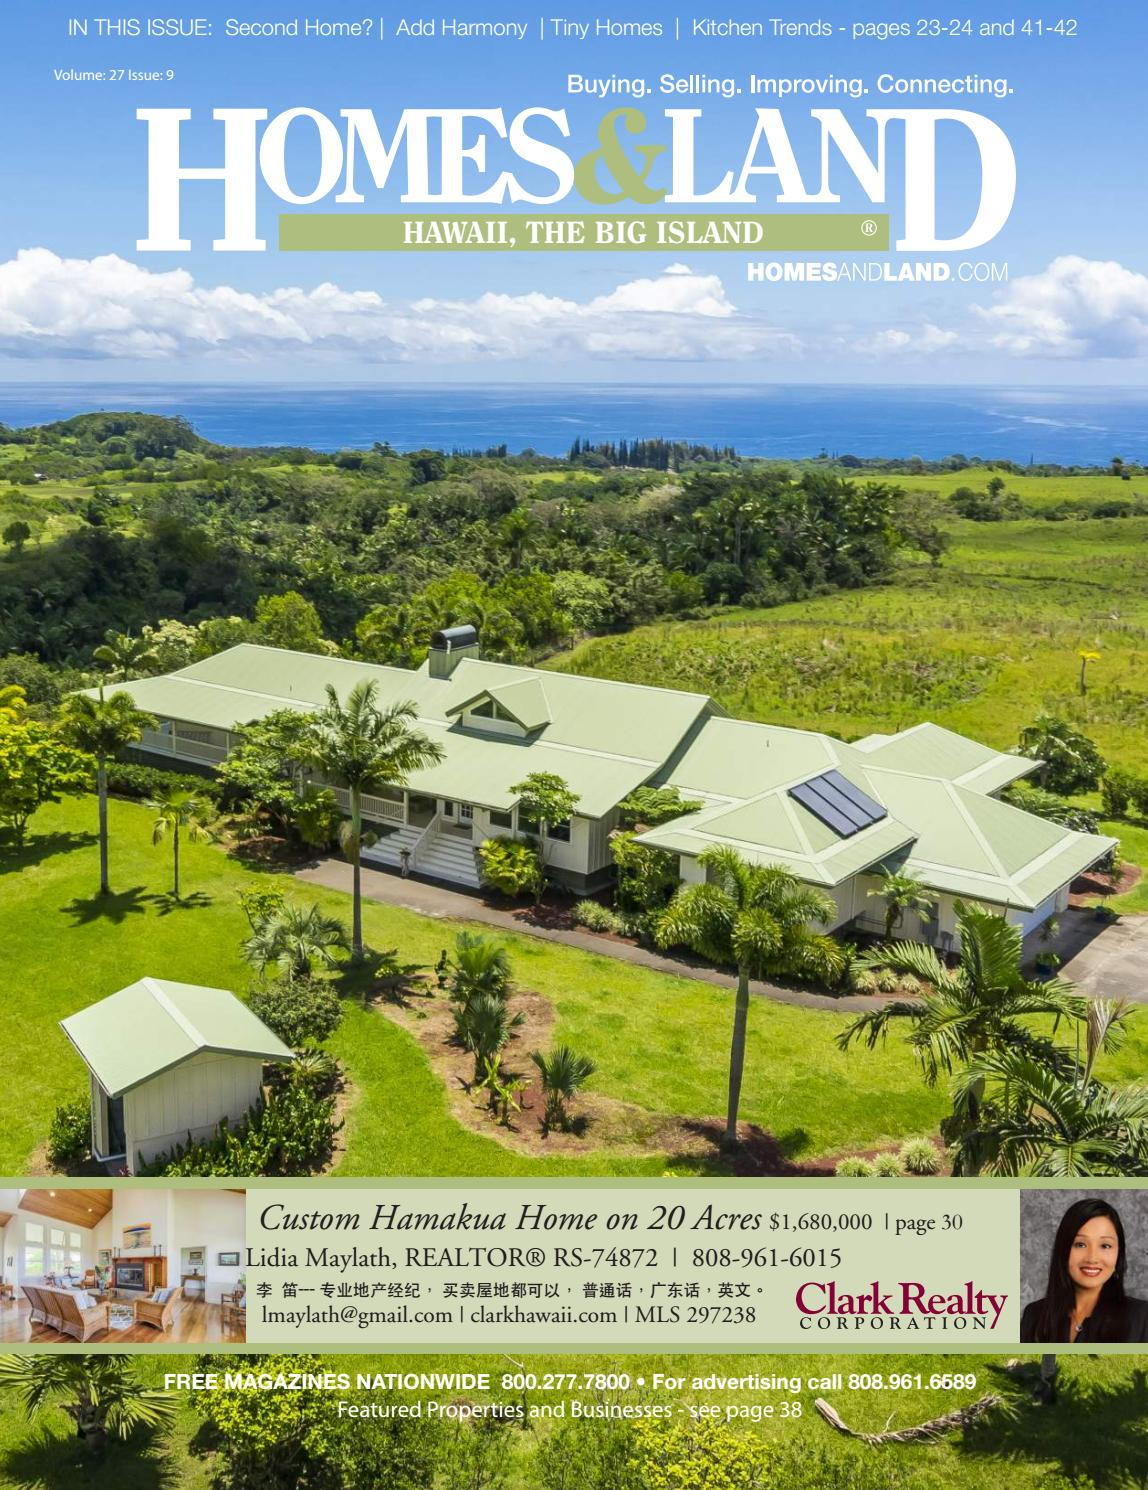 Vol  27, Issue 9 Homes & Land Hawaii, the Big Island by